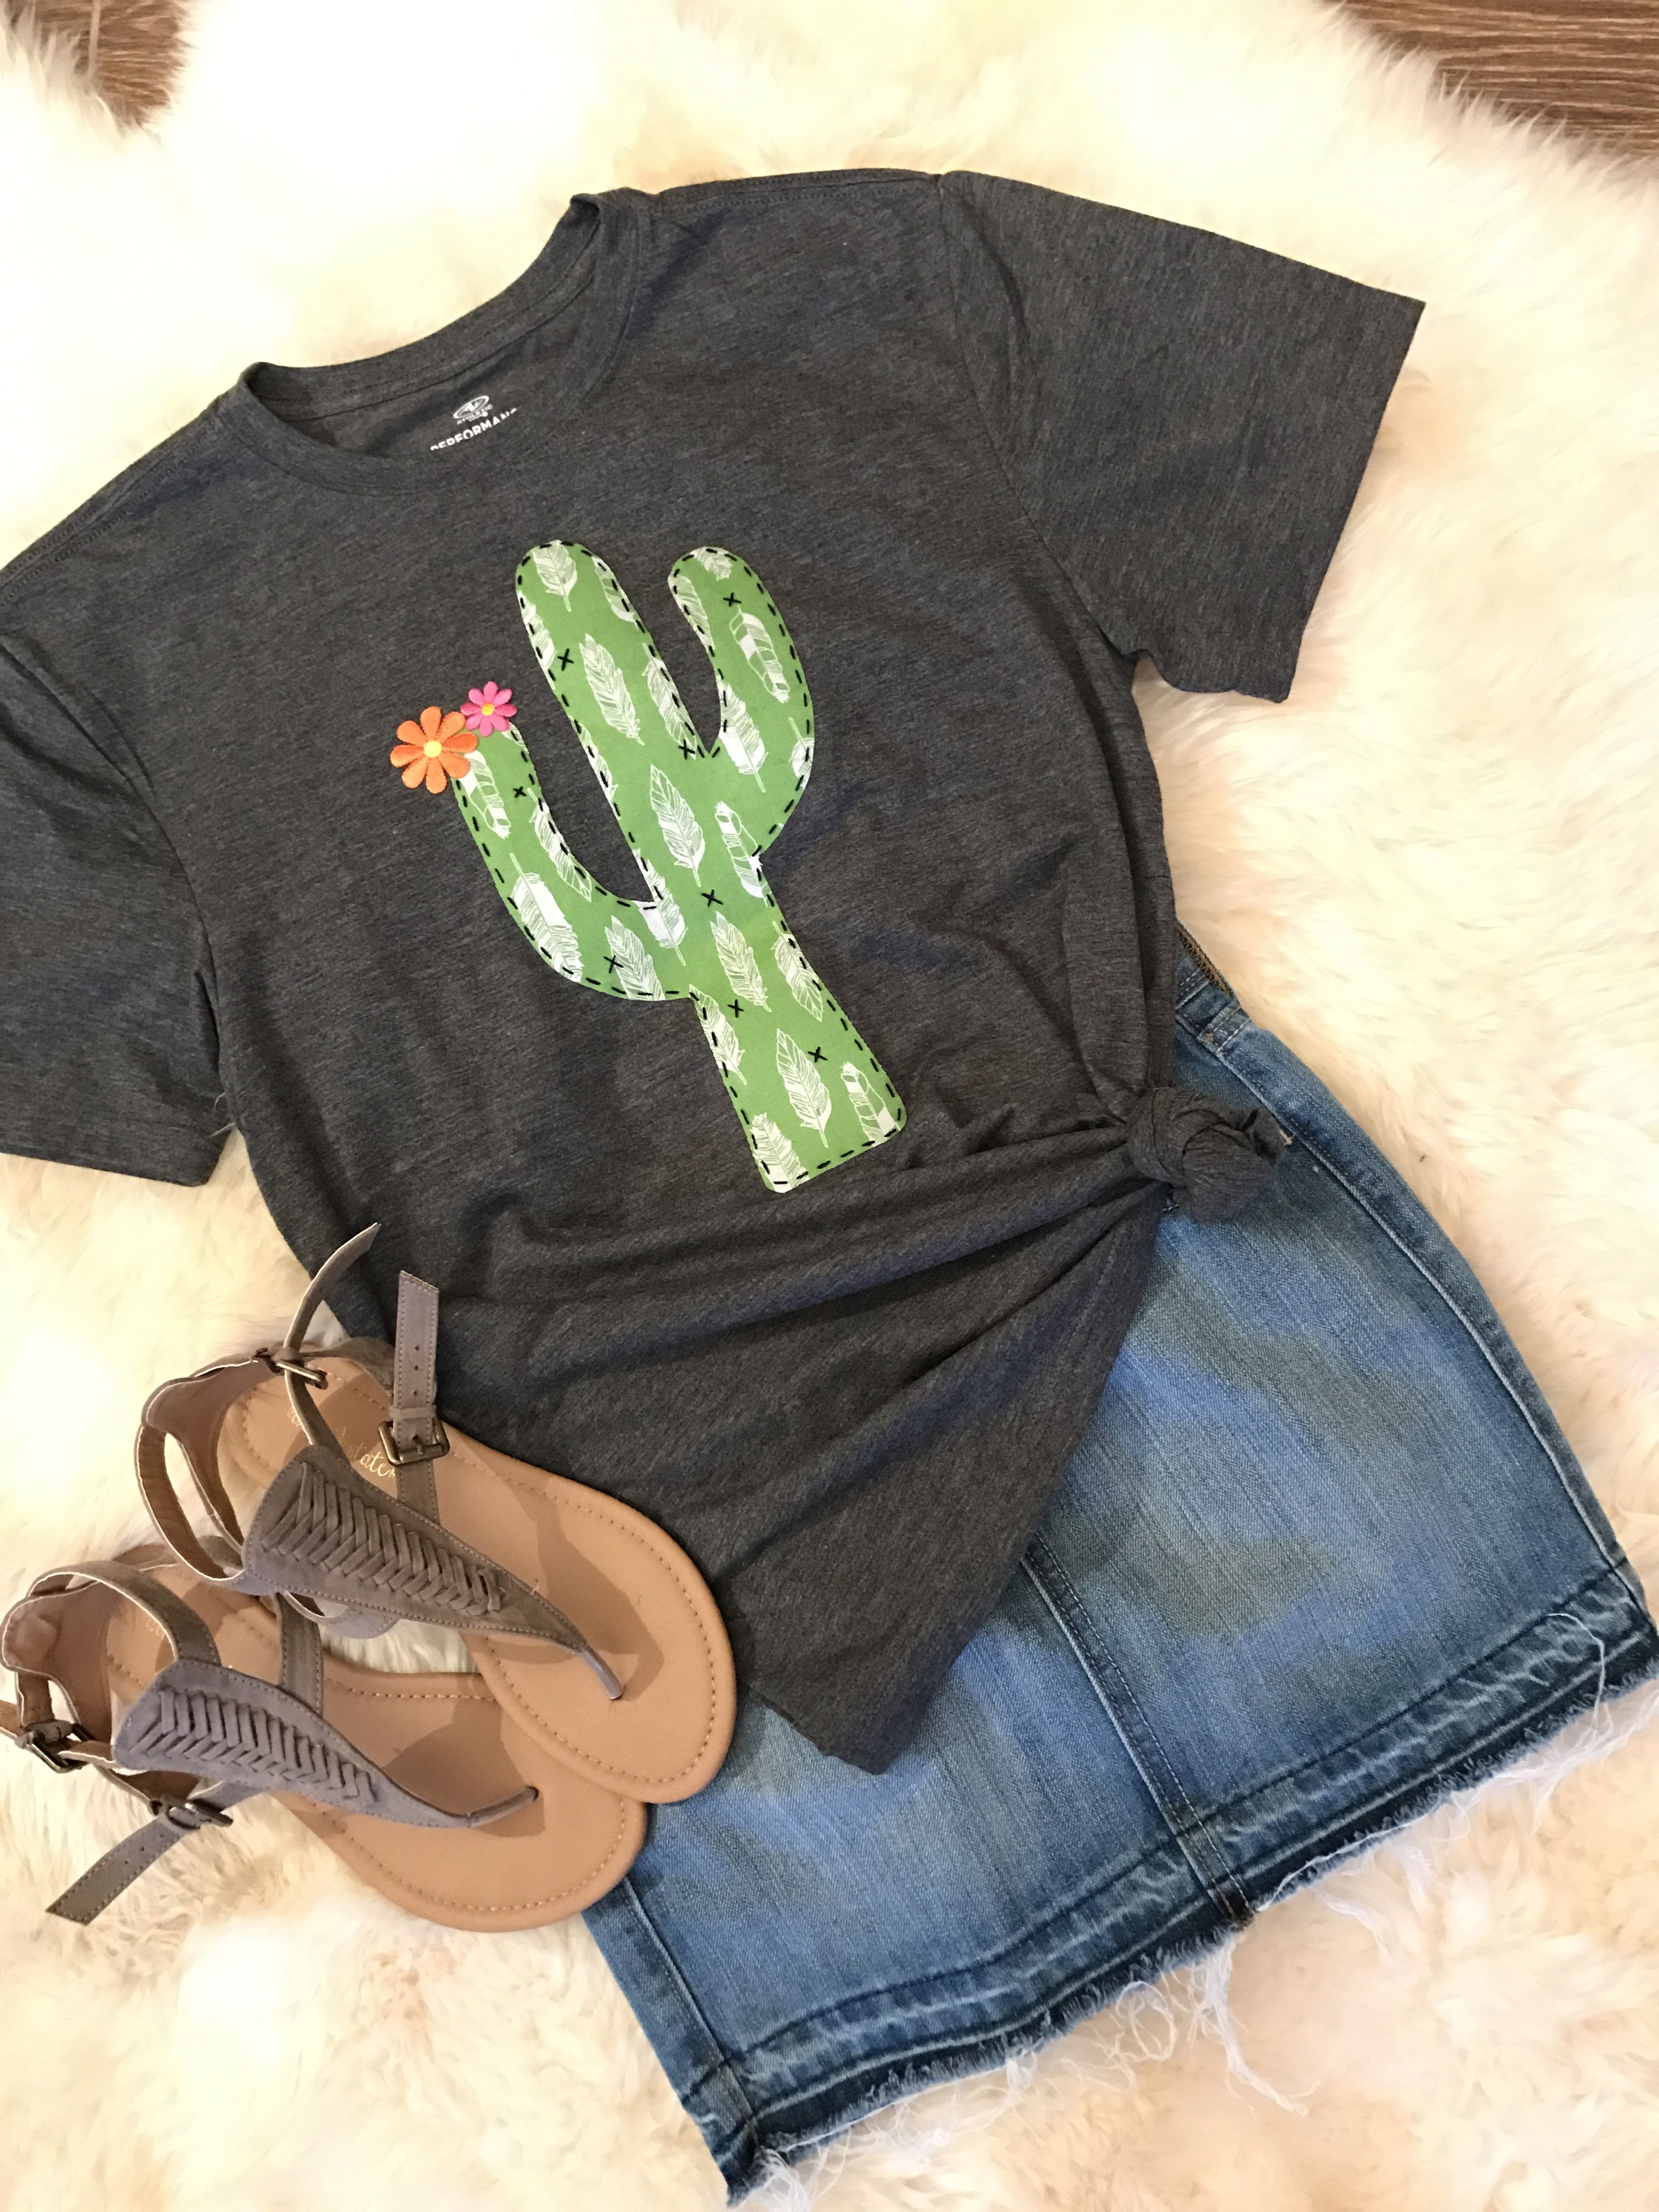 187f34017 What's Your Point, Cactus Shirt, Cactus Tee, Cacti TShirt, Boho Shirt,  Southwestern Shirt, Gift for Her, Womens Shirt, Succulents, Plus Size |  Products ...